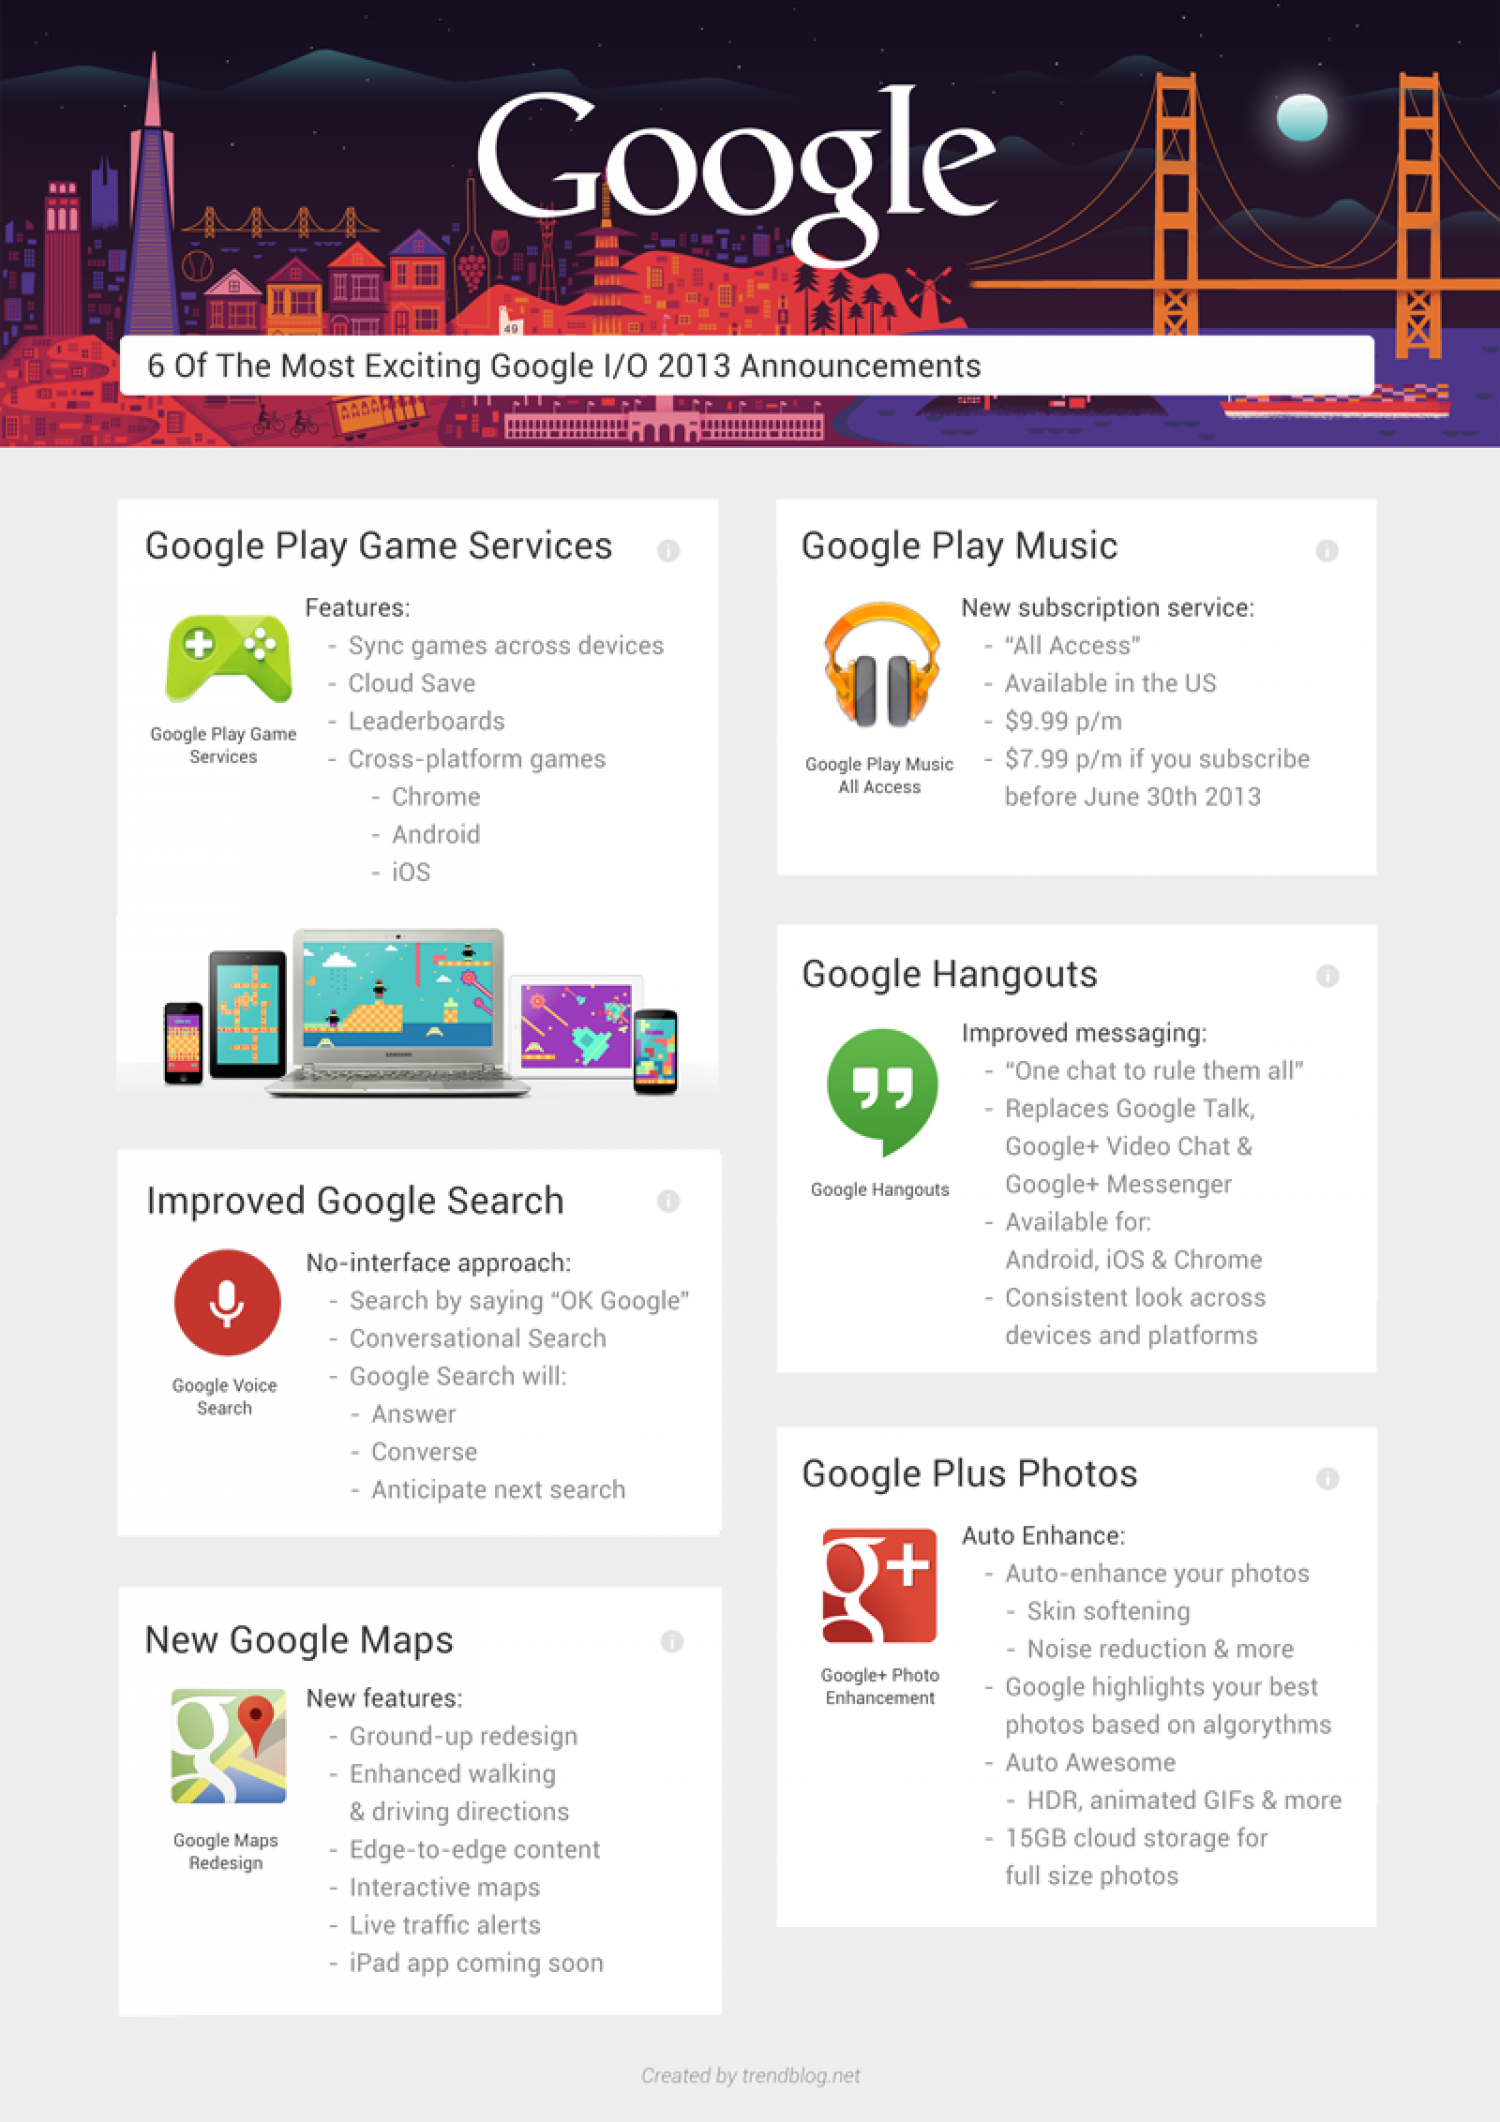 Most Exciting Google I/O 2013 Announcements Infographic